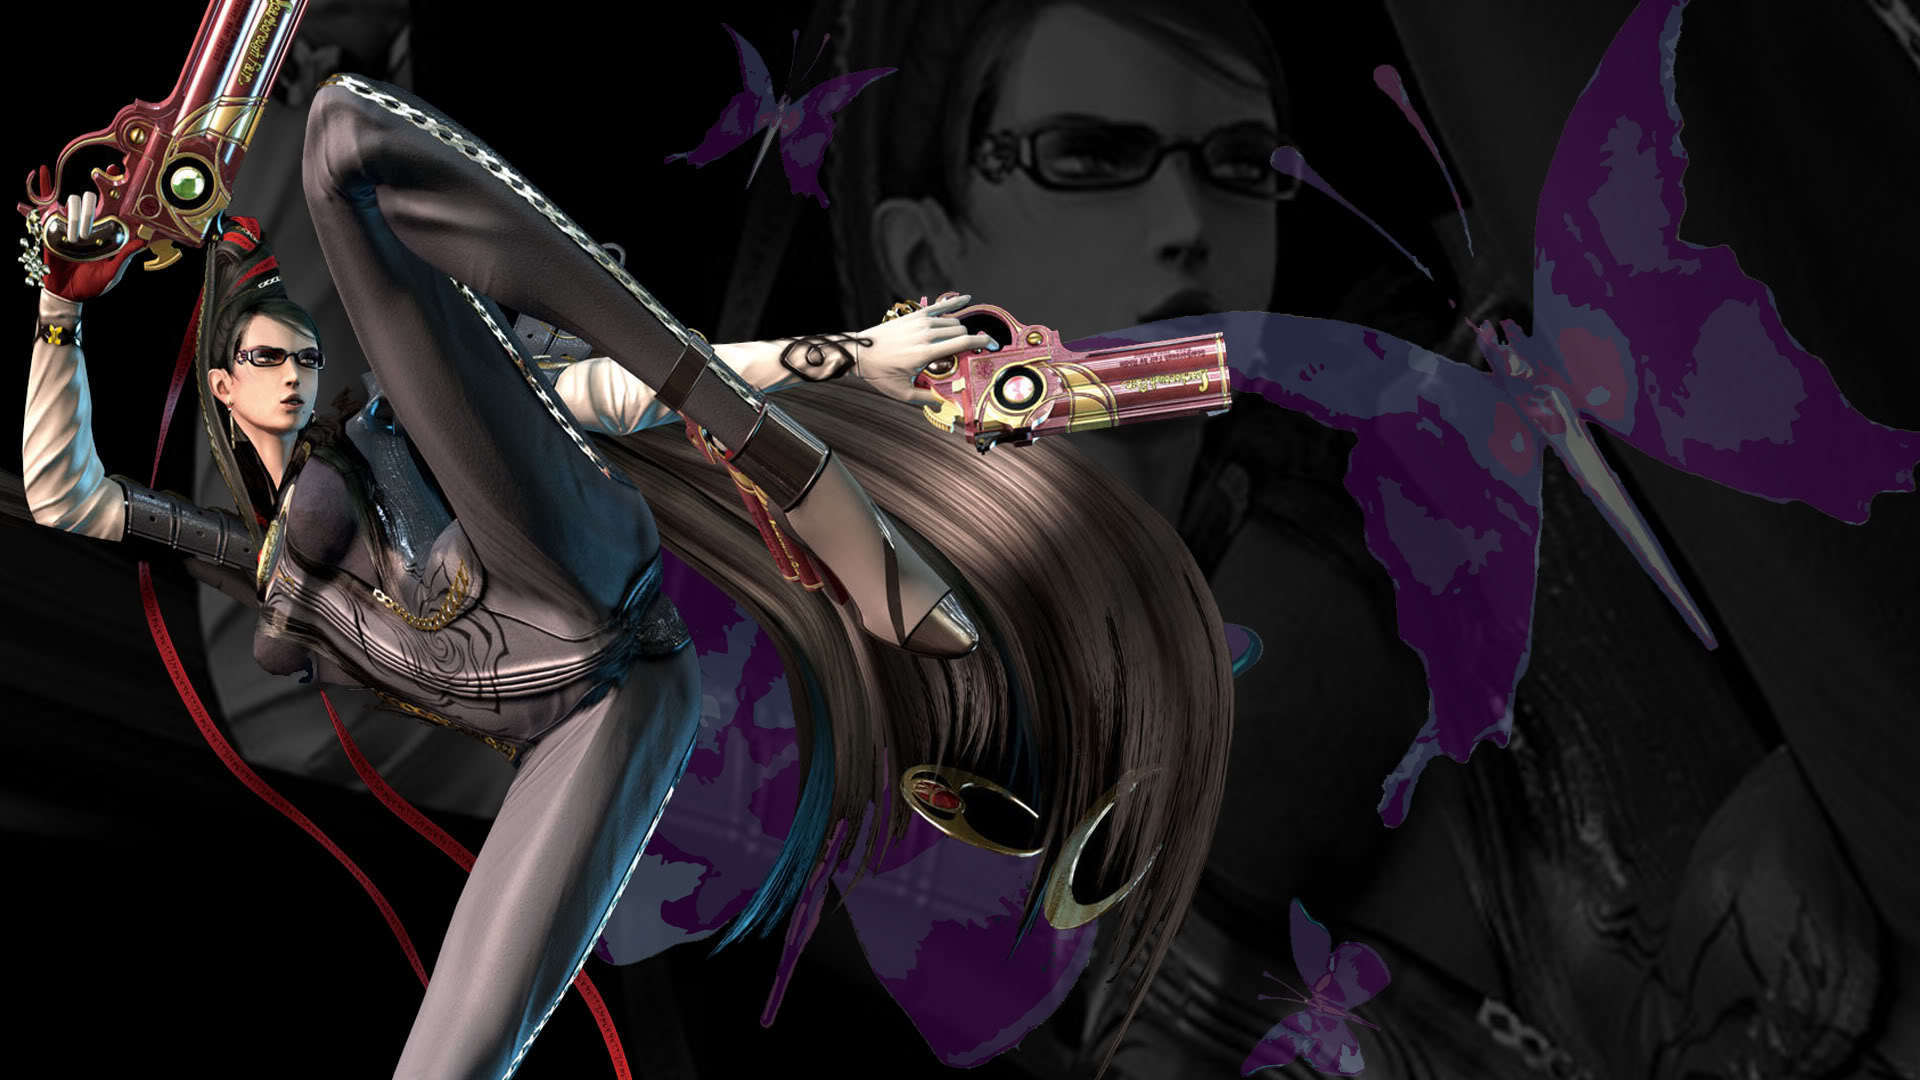 Devil May Cry Wallpaper Hd Video Game Music Images Bayonetta Hd Wallpaper And